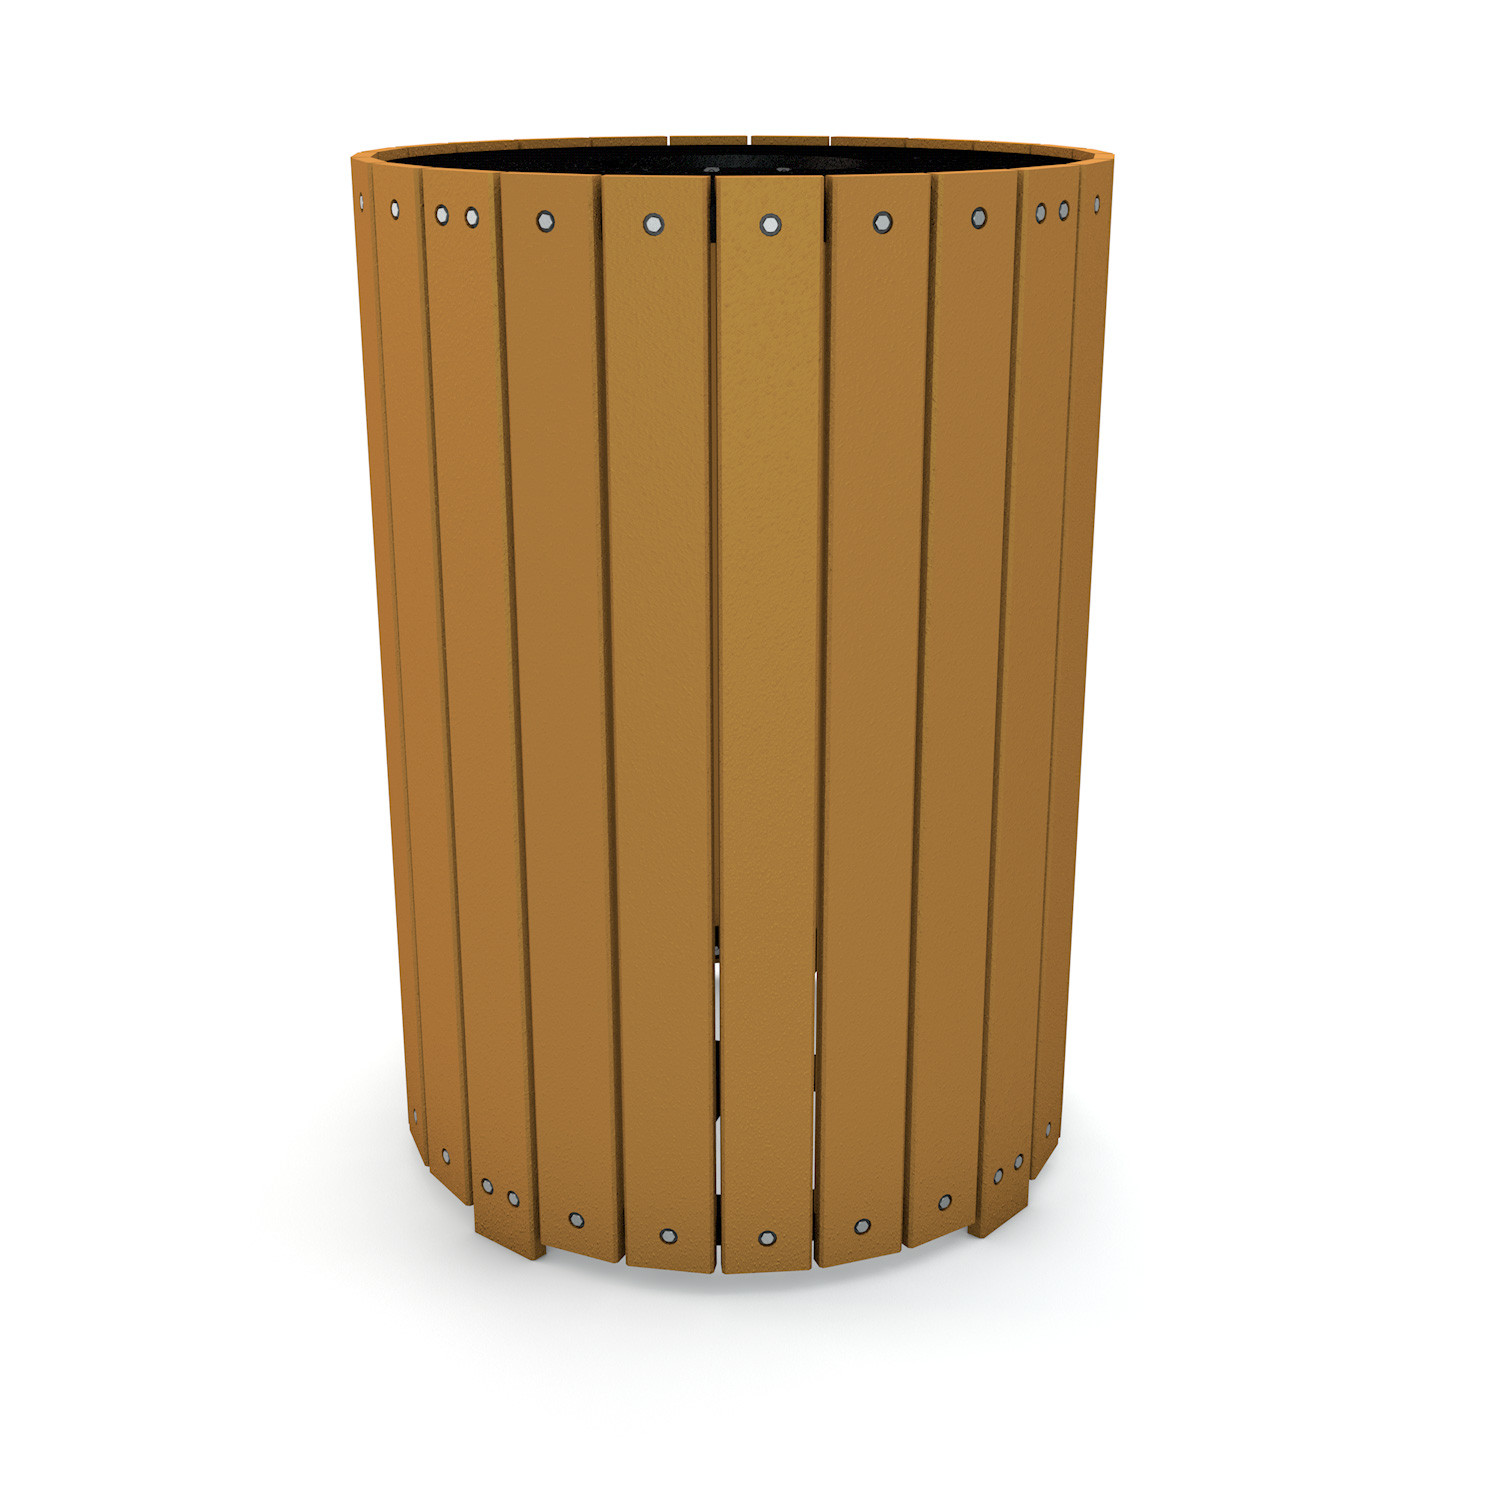 32 Gallon Recycled Plastic Trash Receptacle with Lid